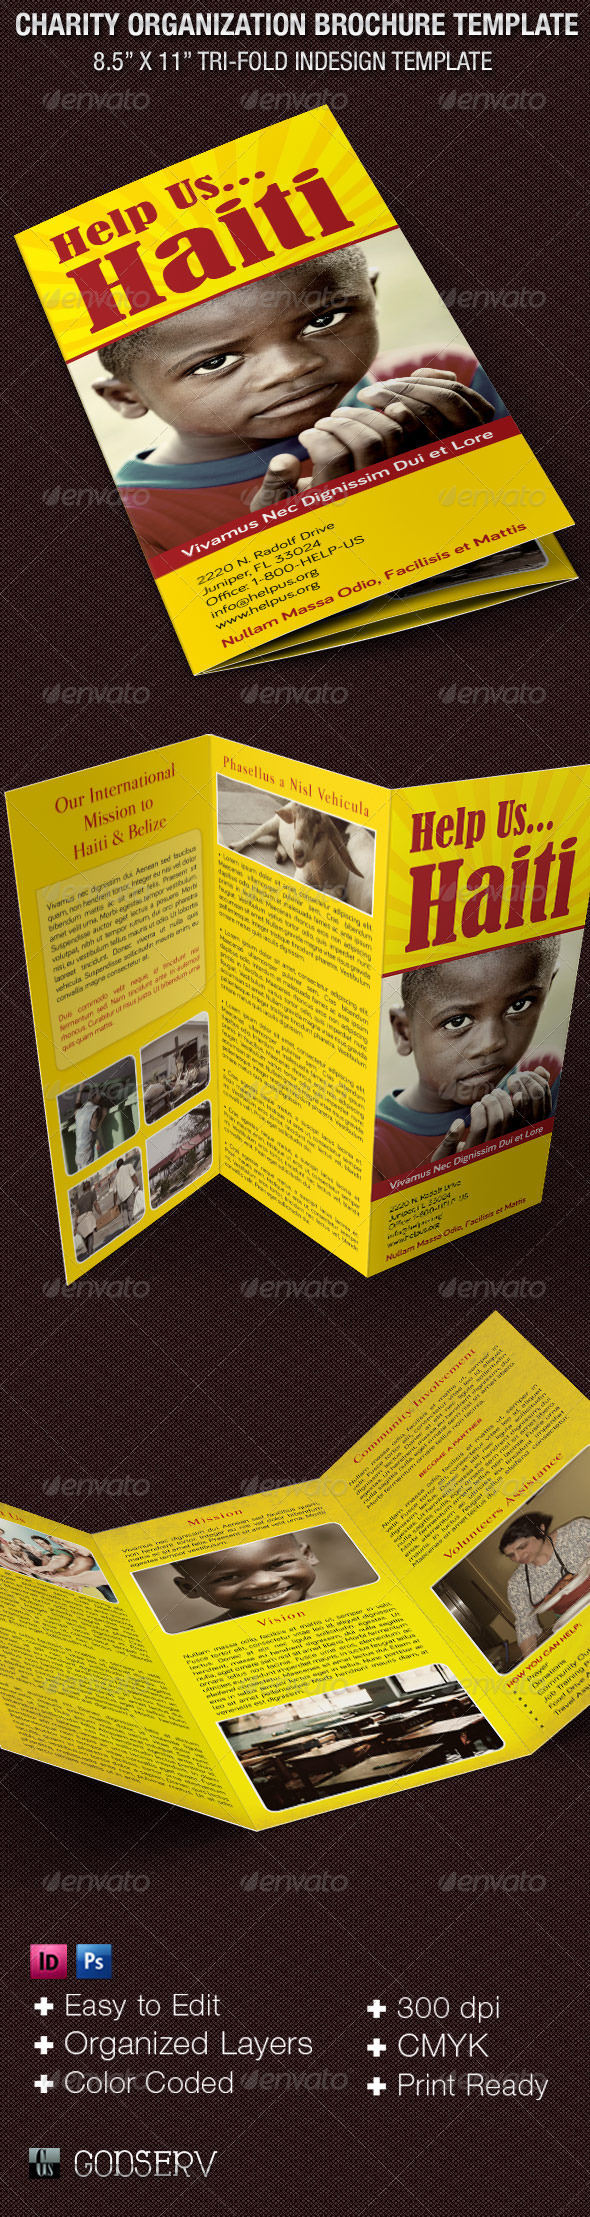 Charity Organization Brochure Template - Informational Brochures